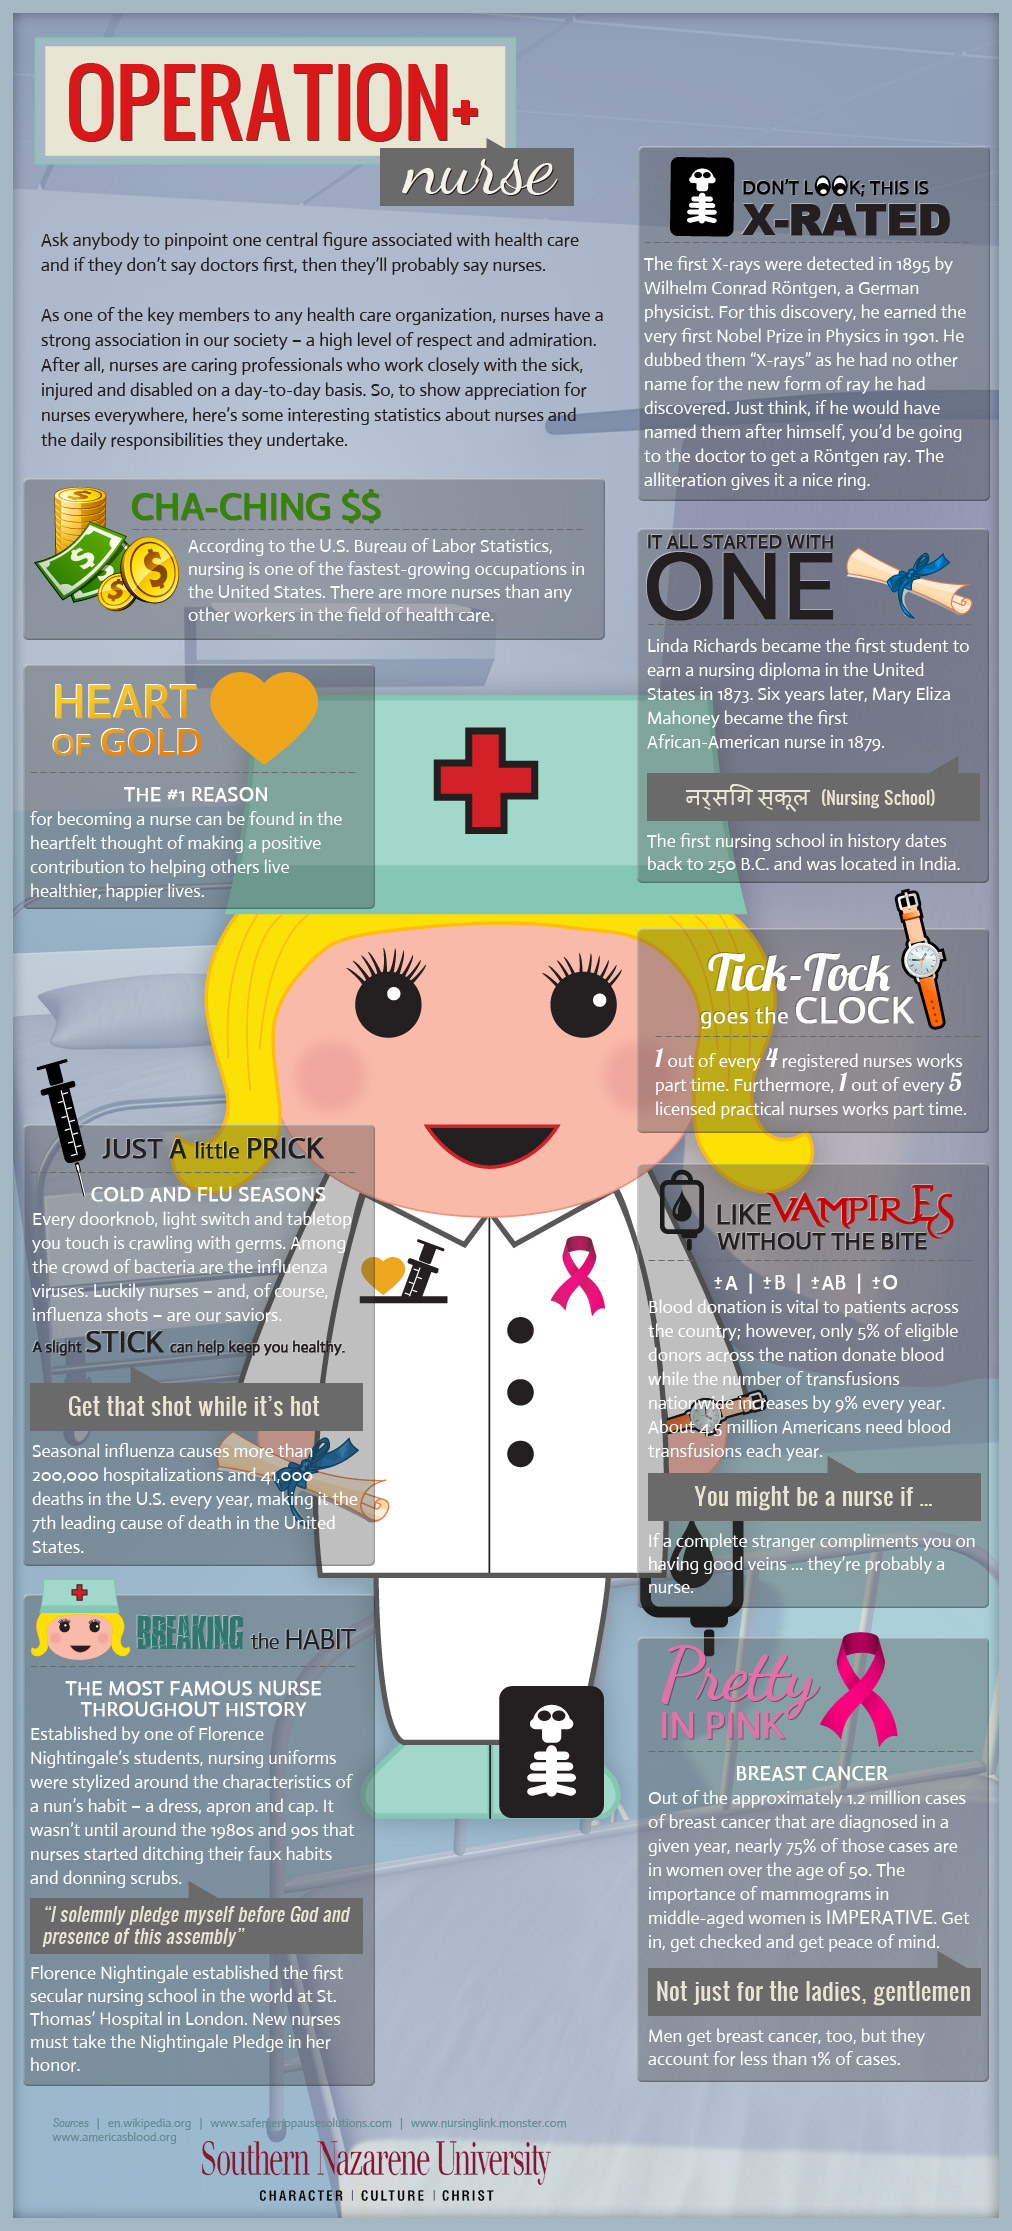 Cool Facts About Nurses